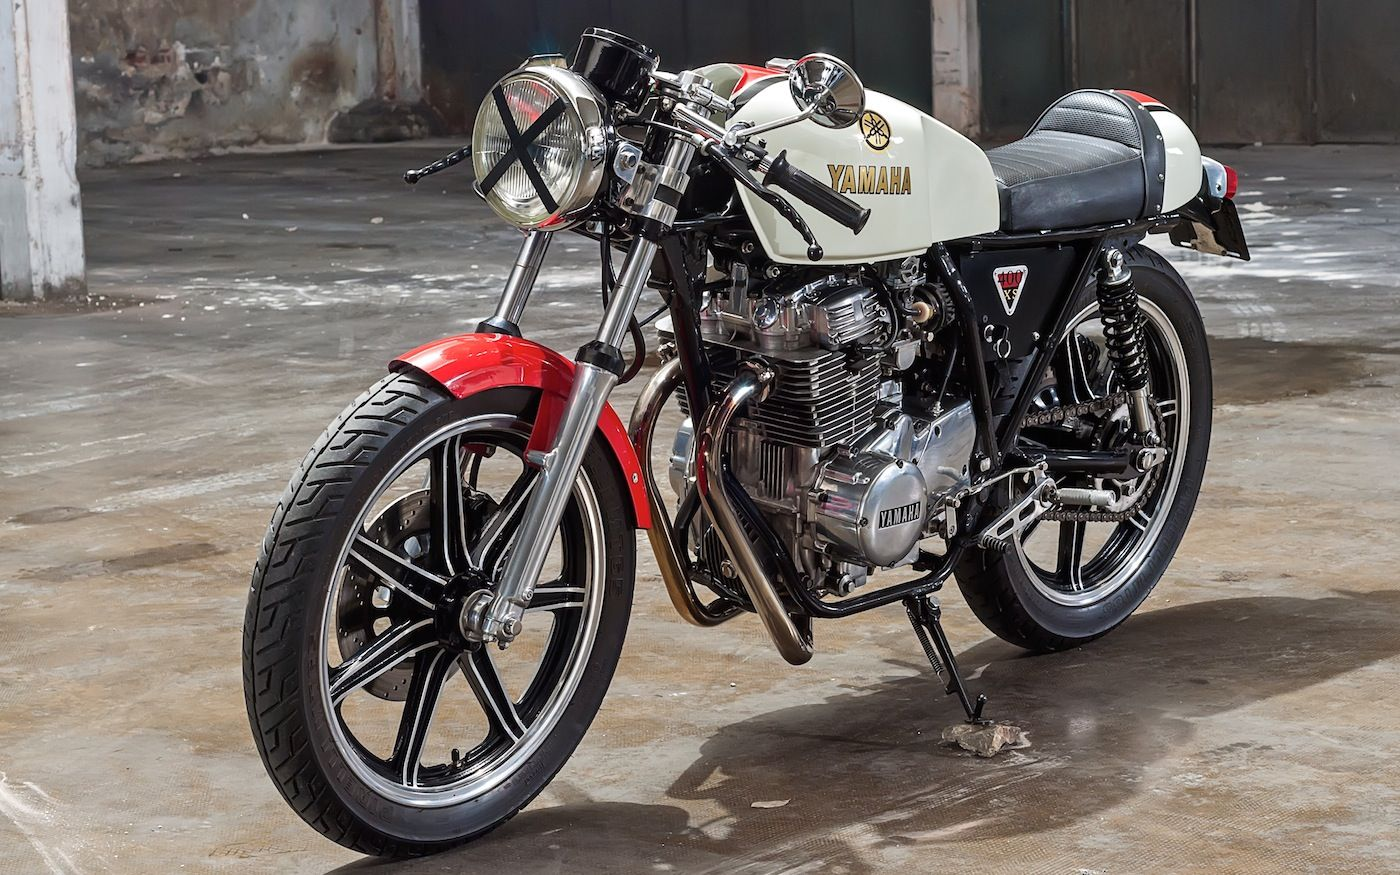 1978 Xs400 By Leandro Duberti Argentina Modified Engine From 27 To 46 Hp Two 36 Mikuni Carburettors Cafe Racer Custom Cafe Racer Yamaha Cafe Racer [ 875 x 1400 Pixel ]